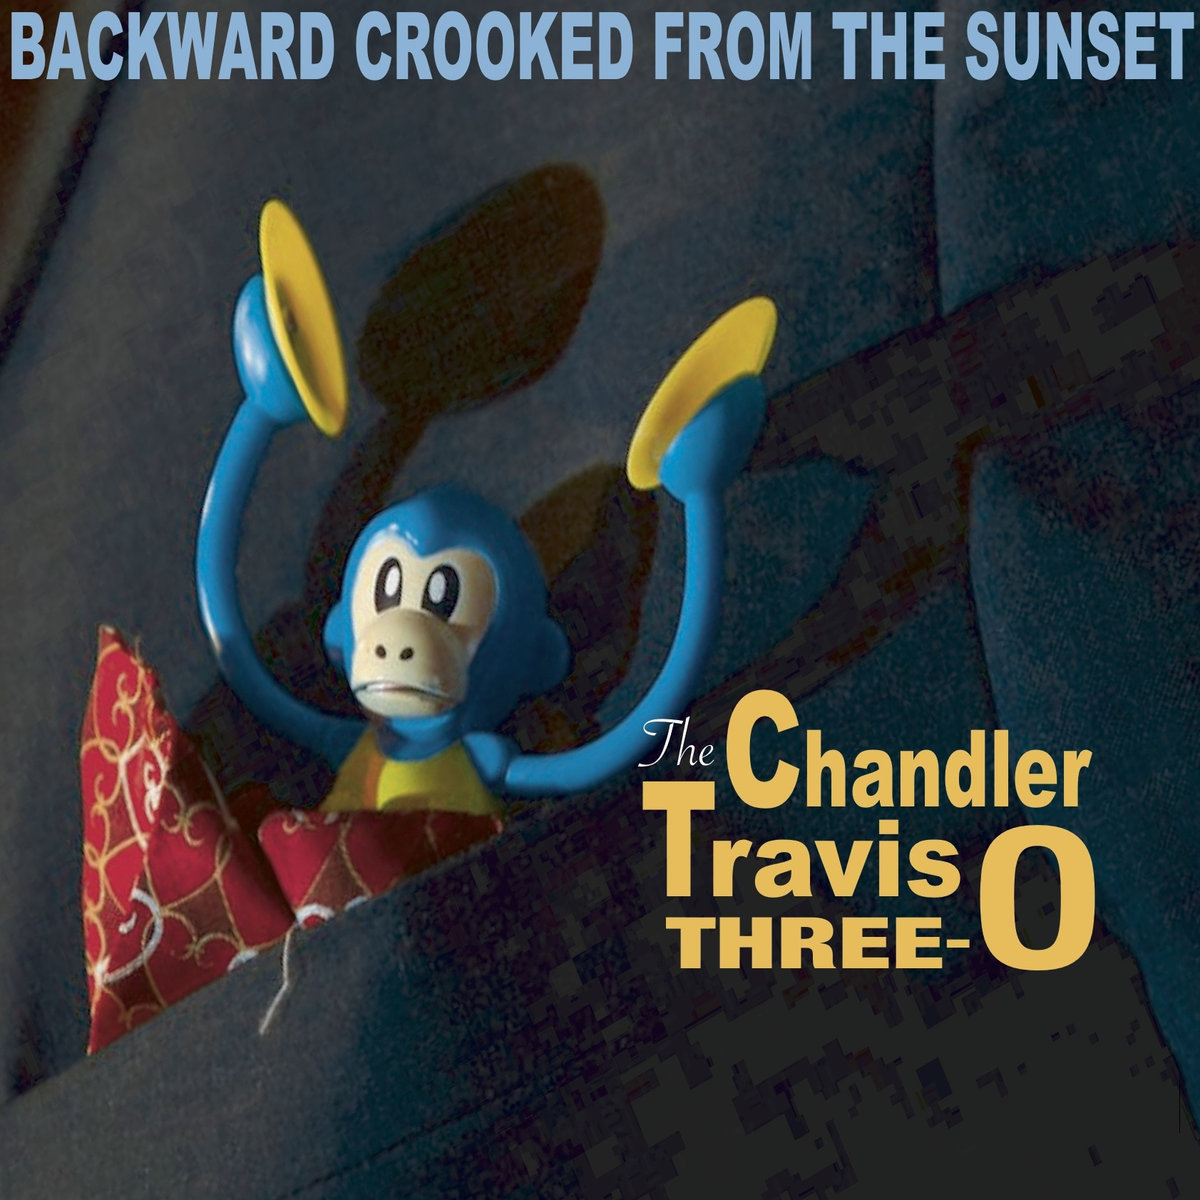 "STEREO EMBERS EXCLUSIVE ALBUM STREAM PREVIEW – The Chandler Travis Three-O's ""Backward, Crooked From the Sunset"""